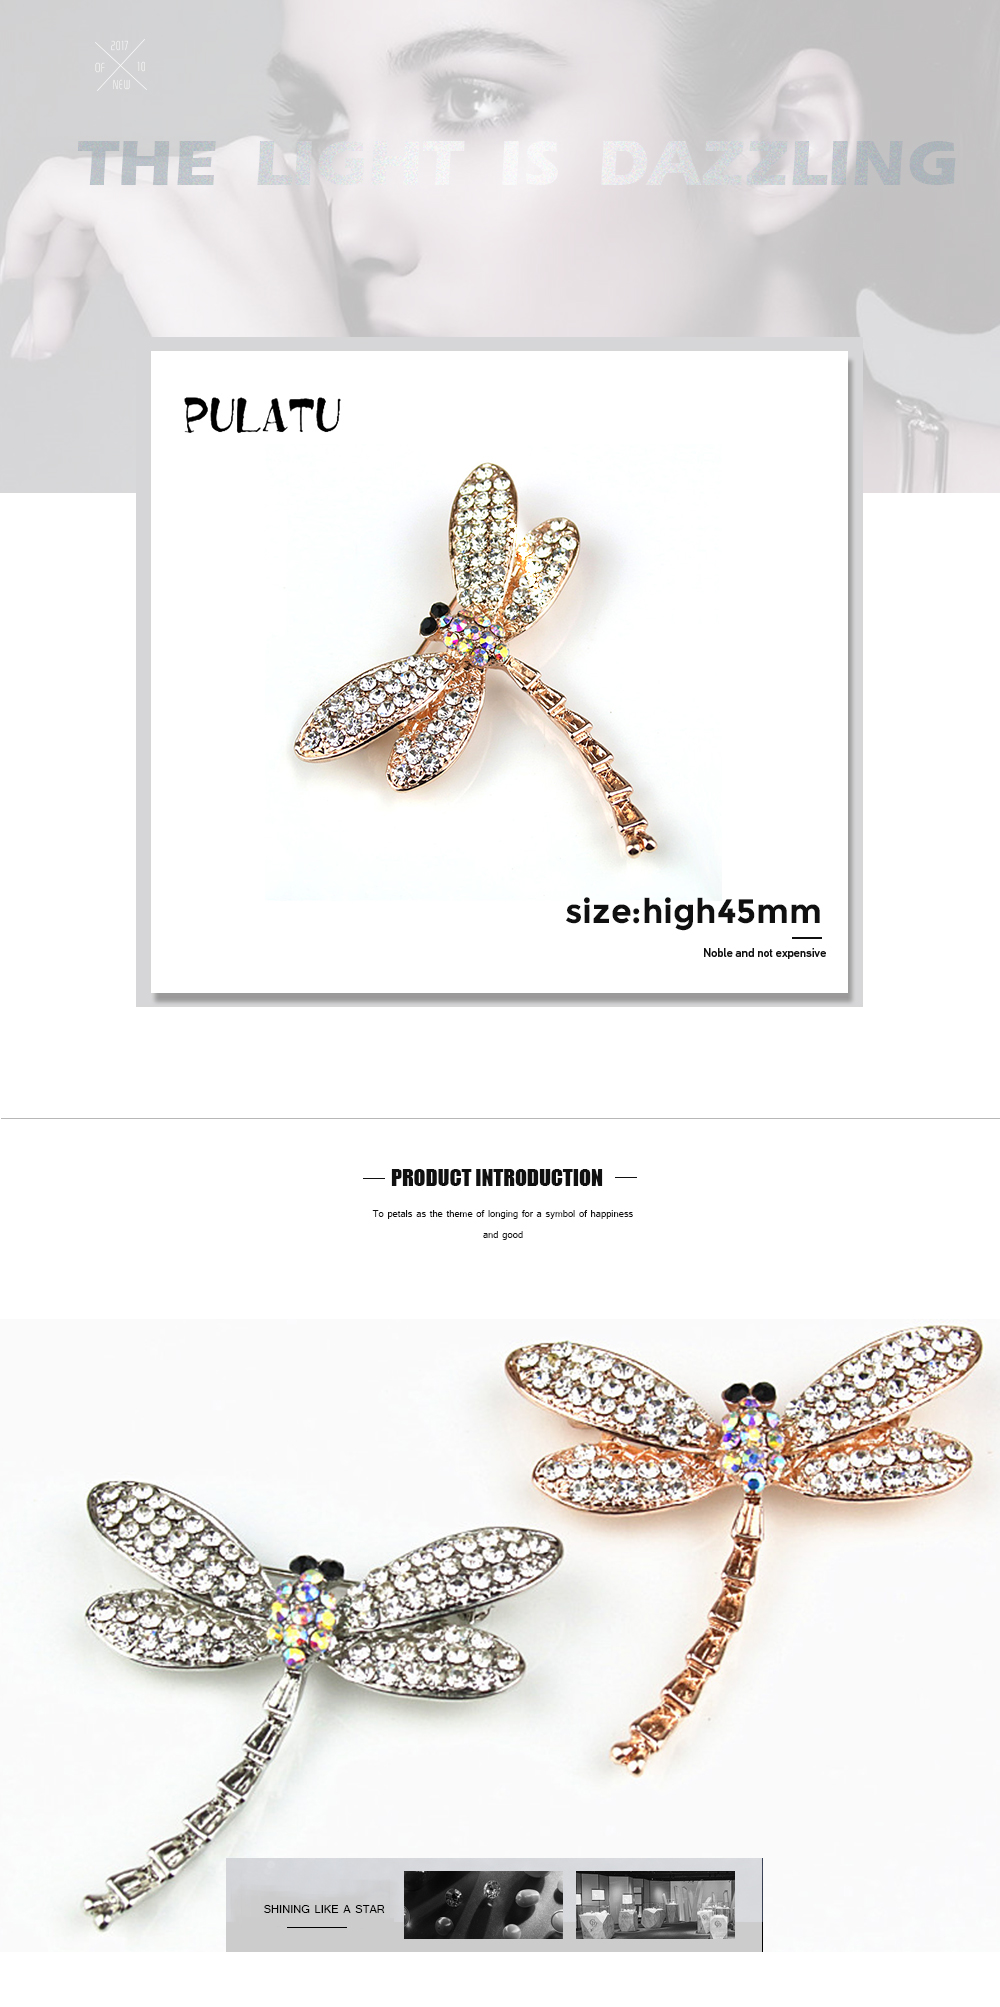 US $5 69 28% OFF|PULATU dragonfly jewelry women brooches fashion party  decoration pins Zinc alloy brooch new year gift clothing accessories-in